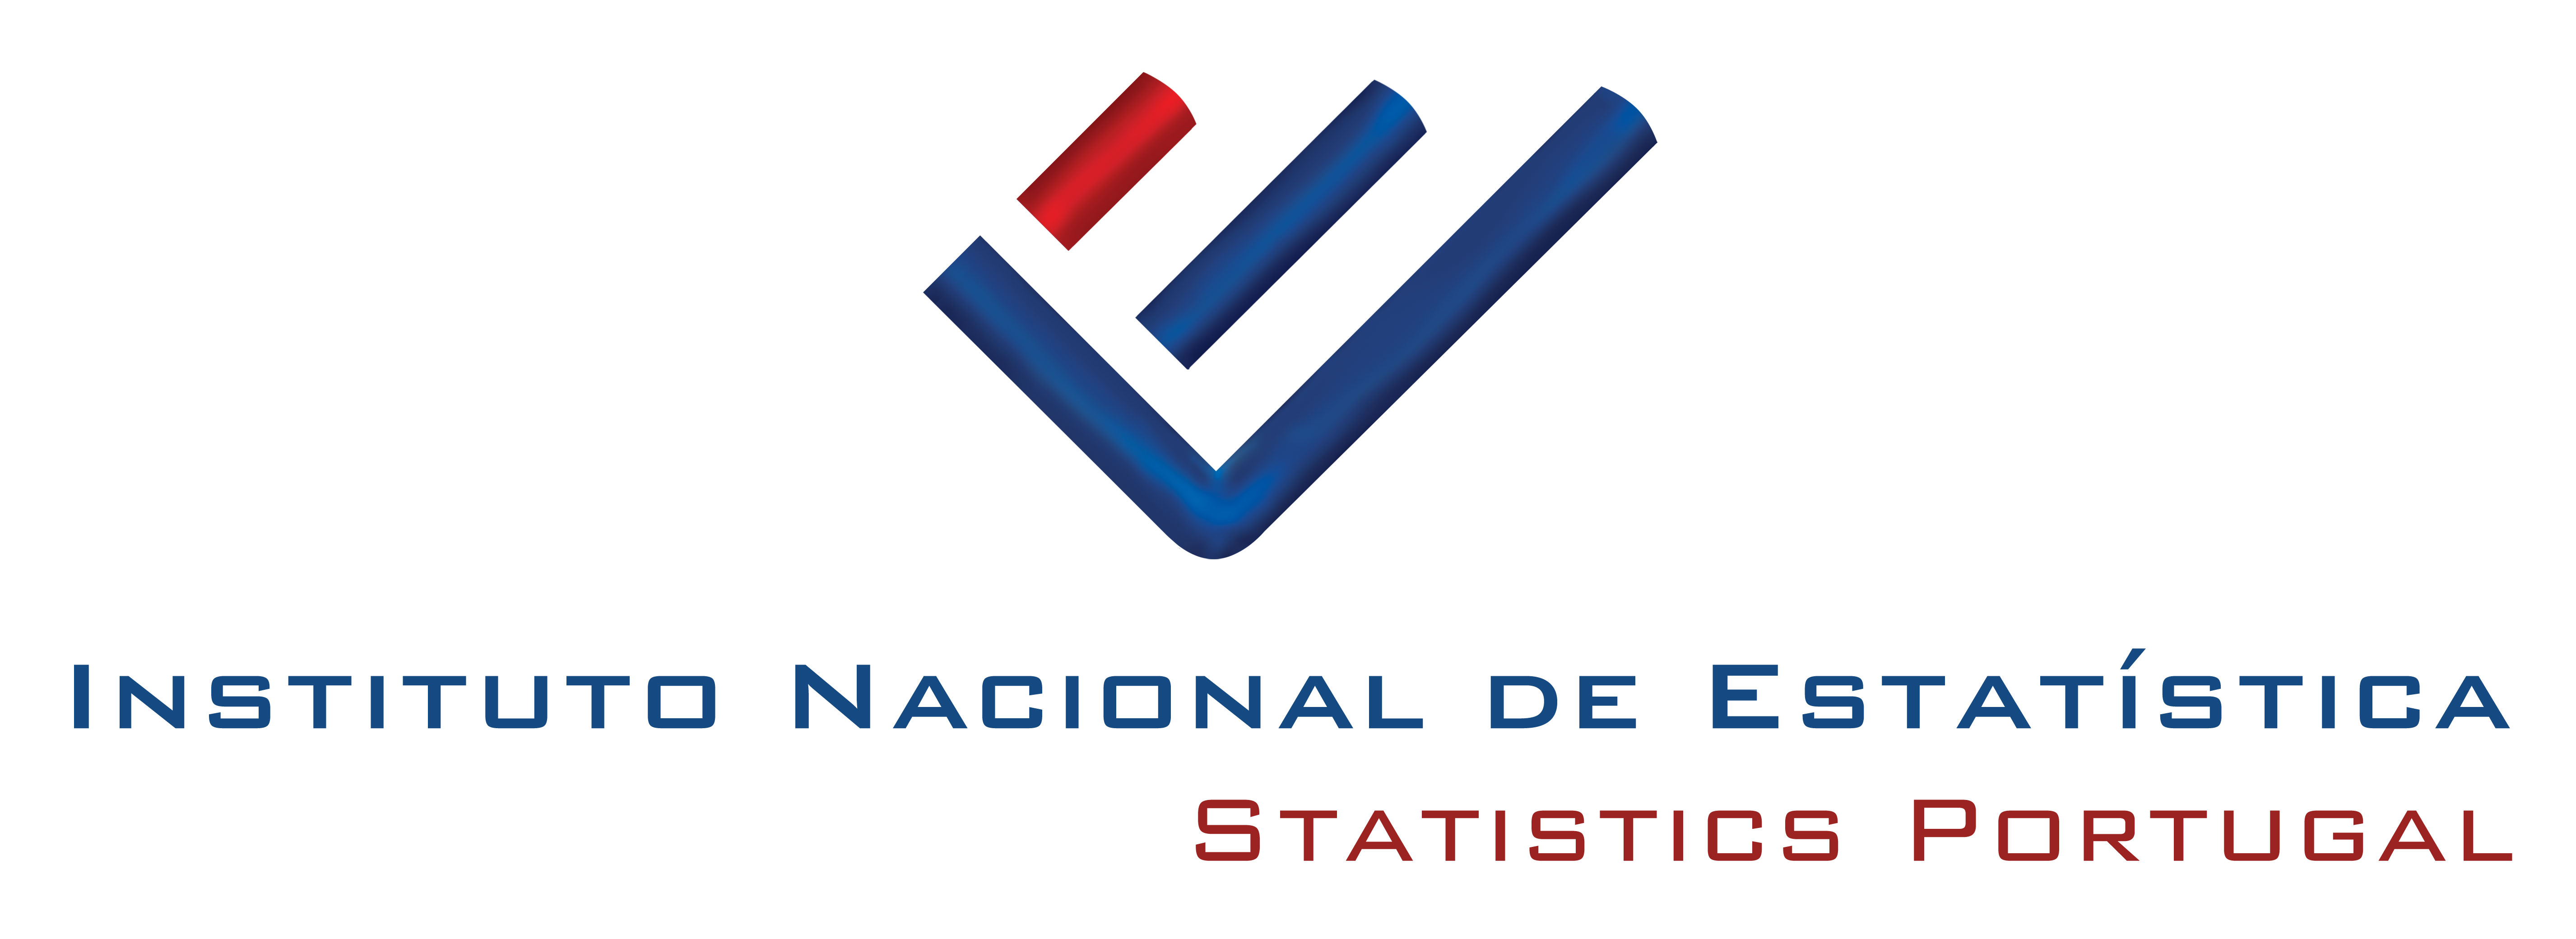 Instituto Nacional de Estatísticas